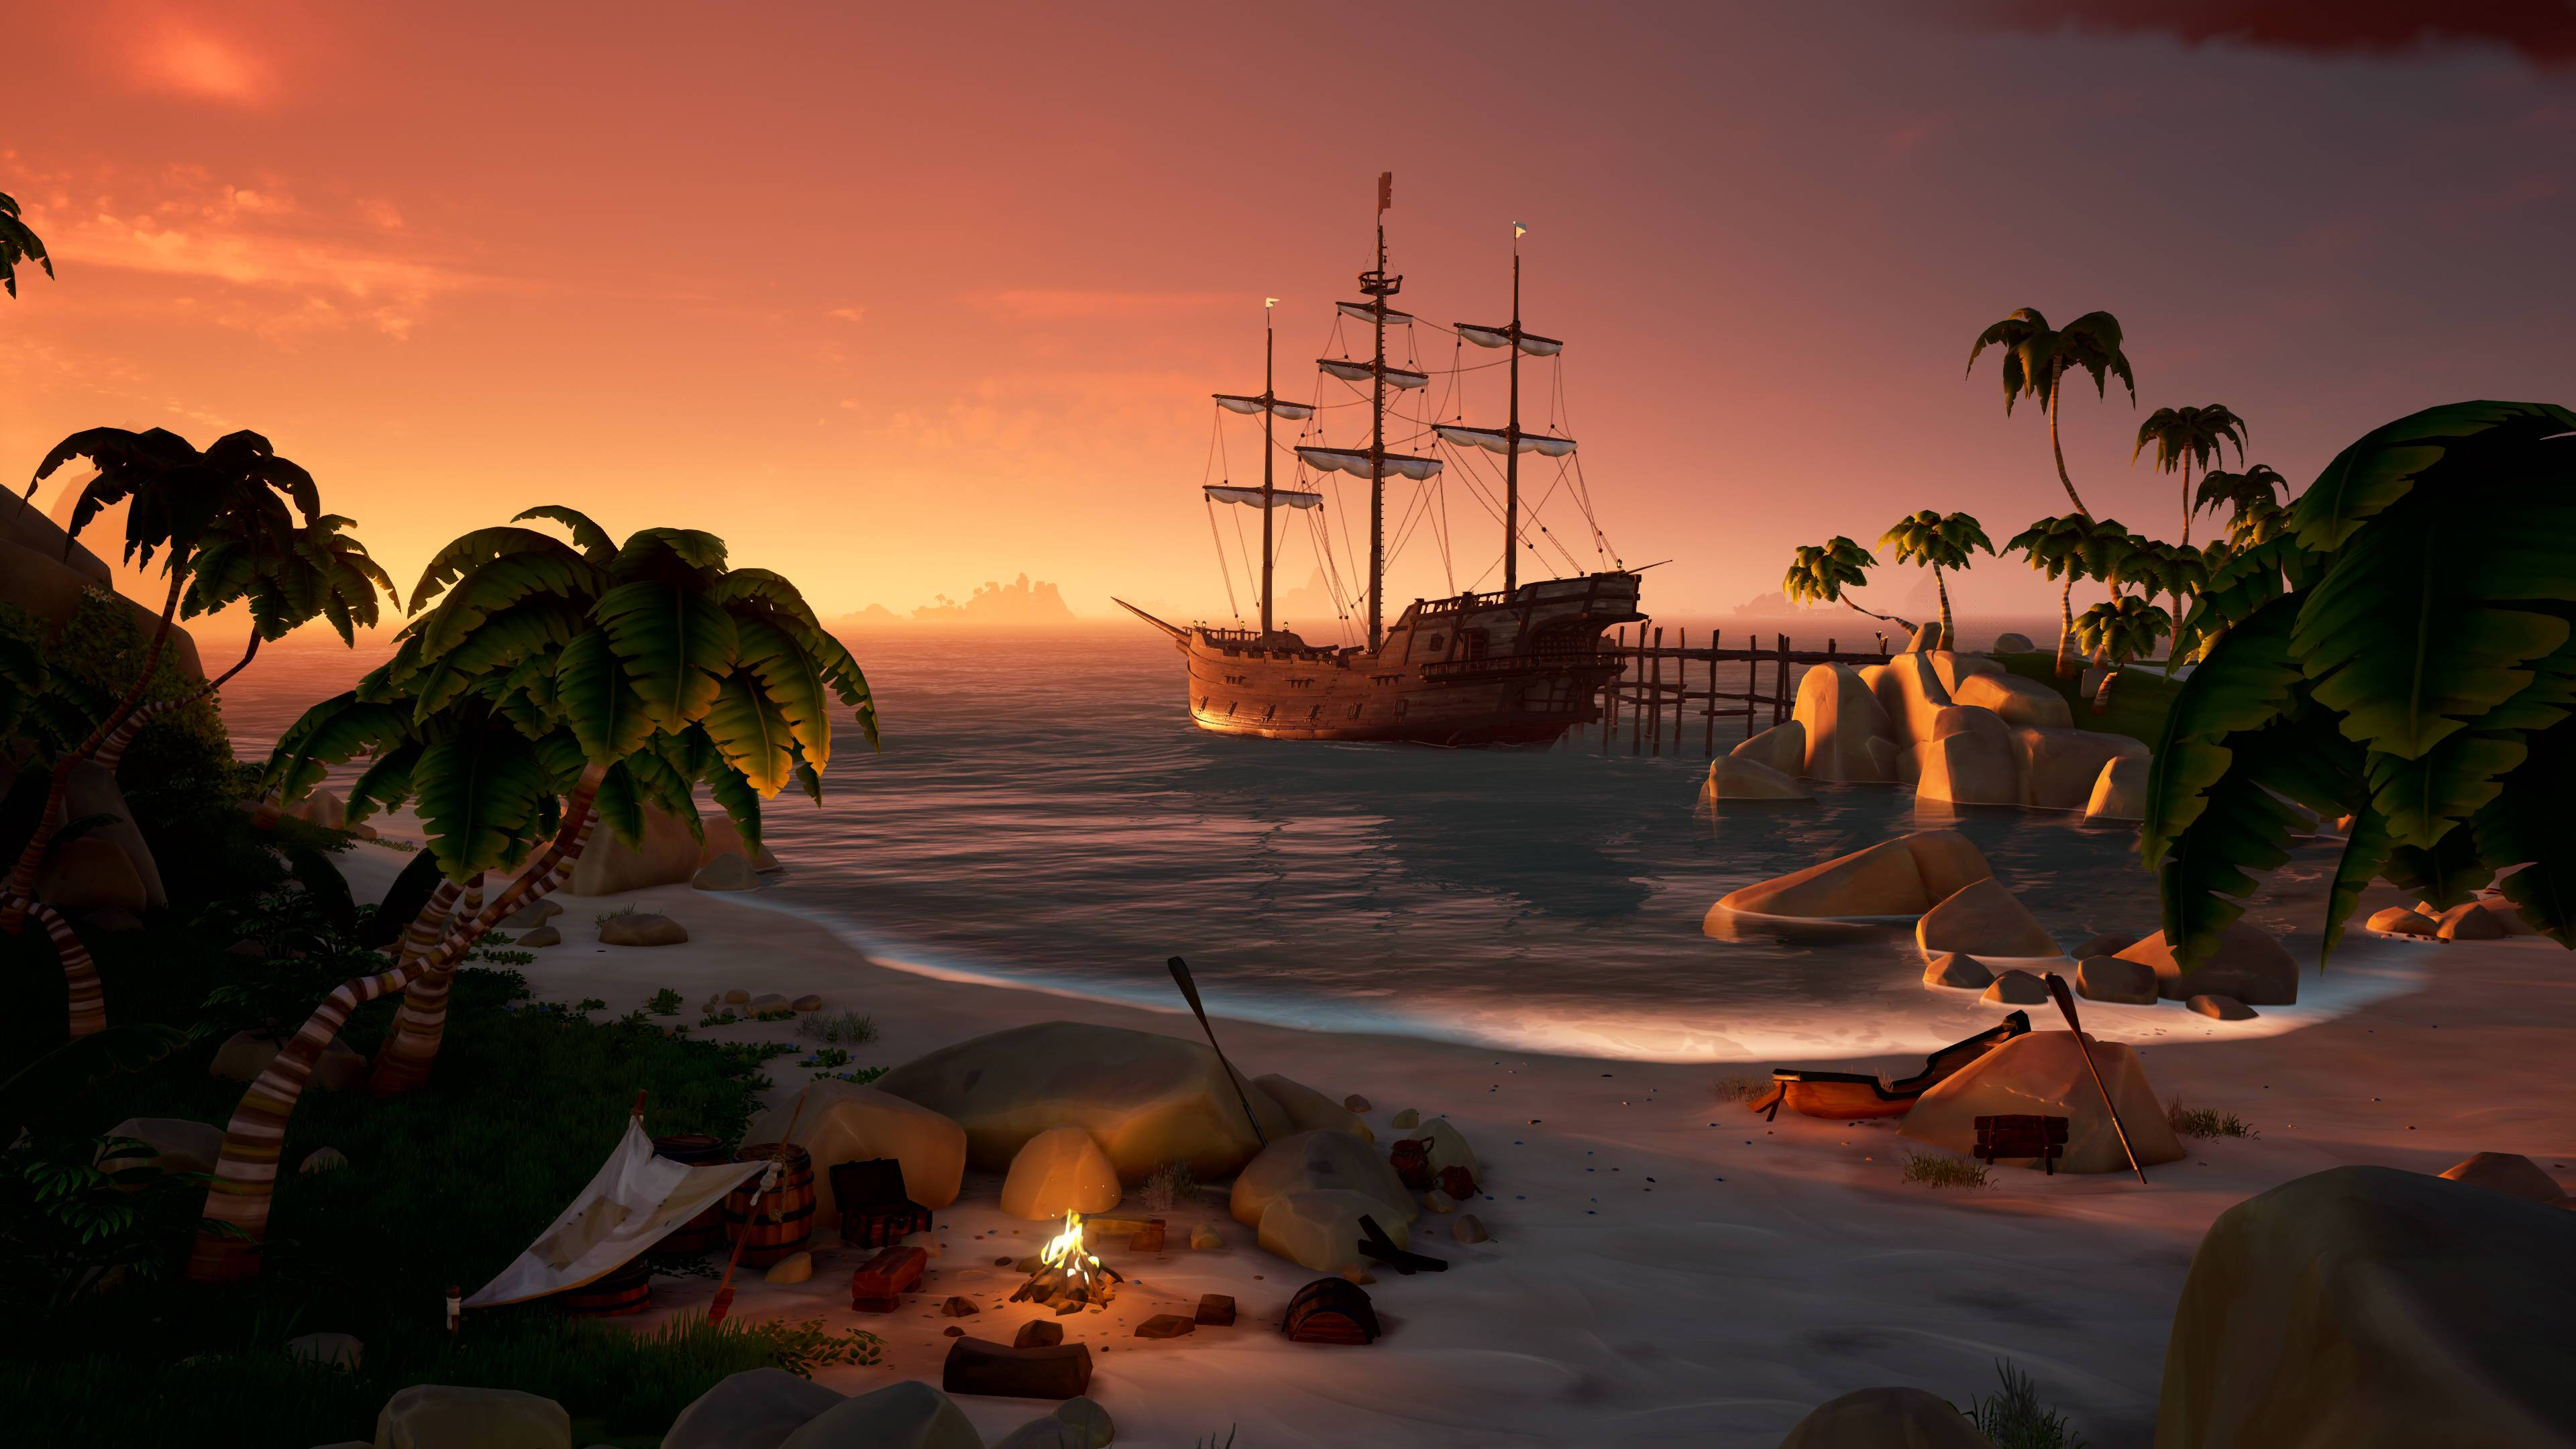 The Wccftech Crew Reviews Rare's Sea of Thieves